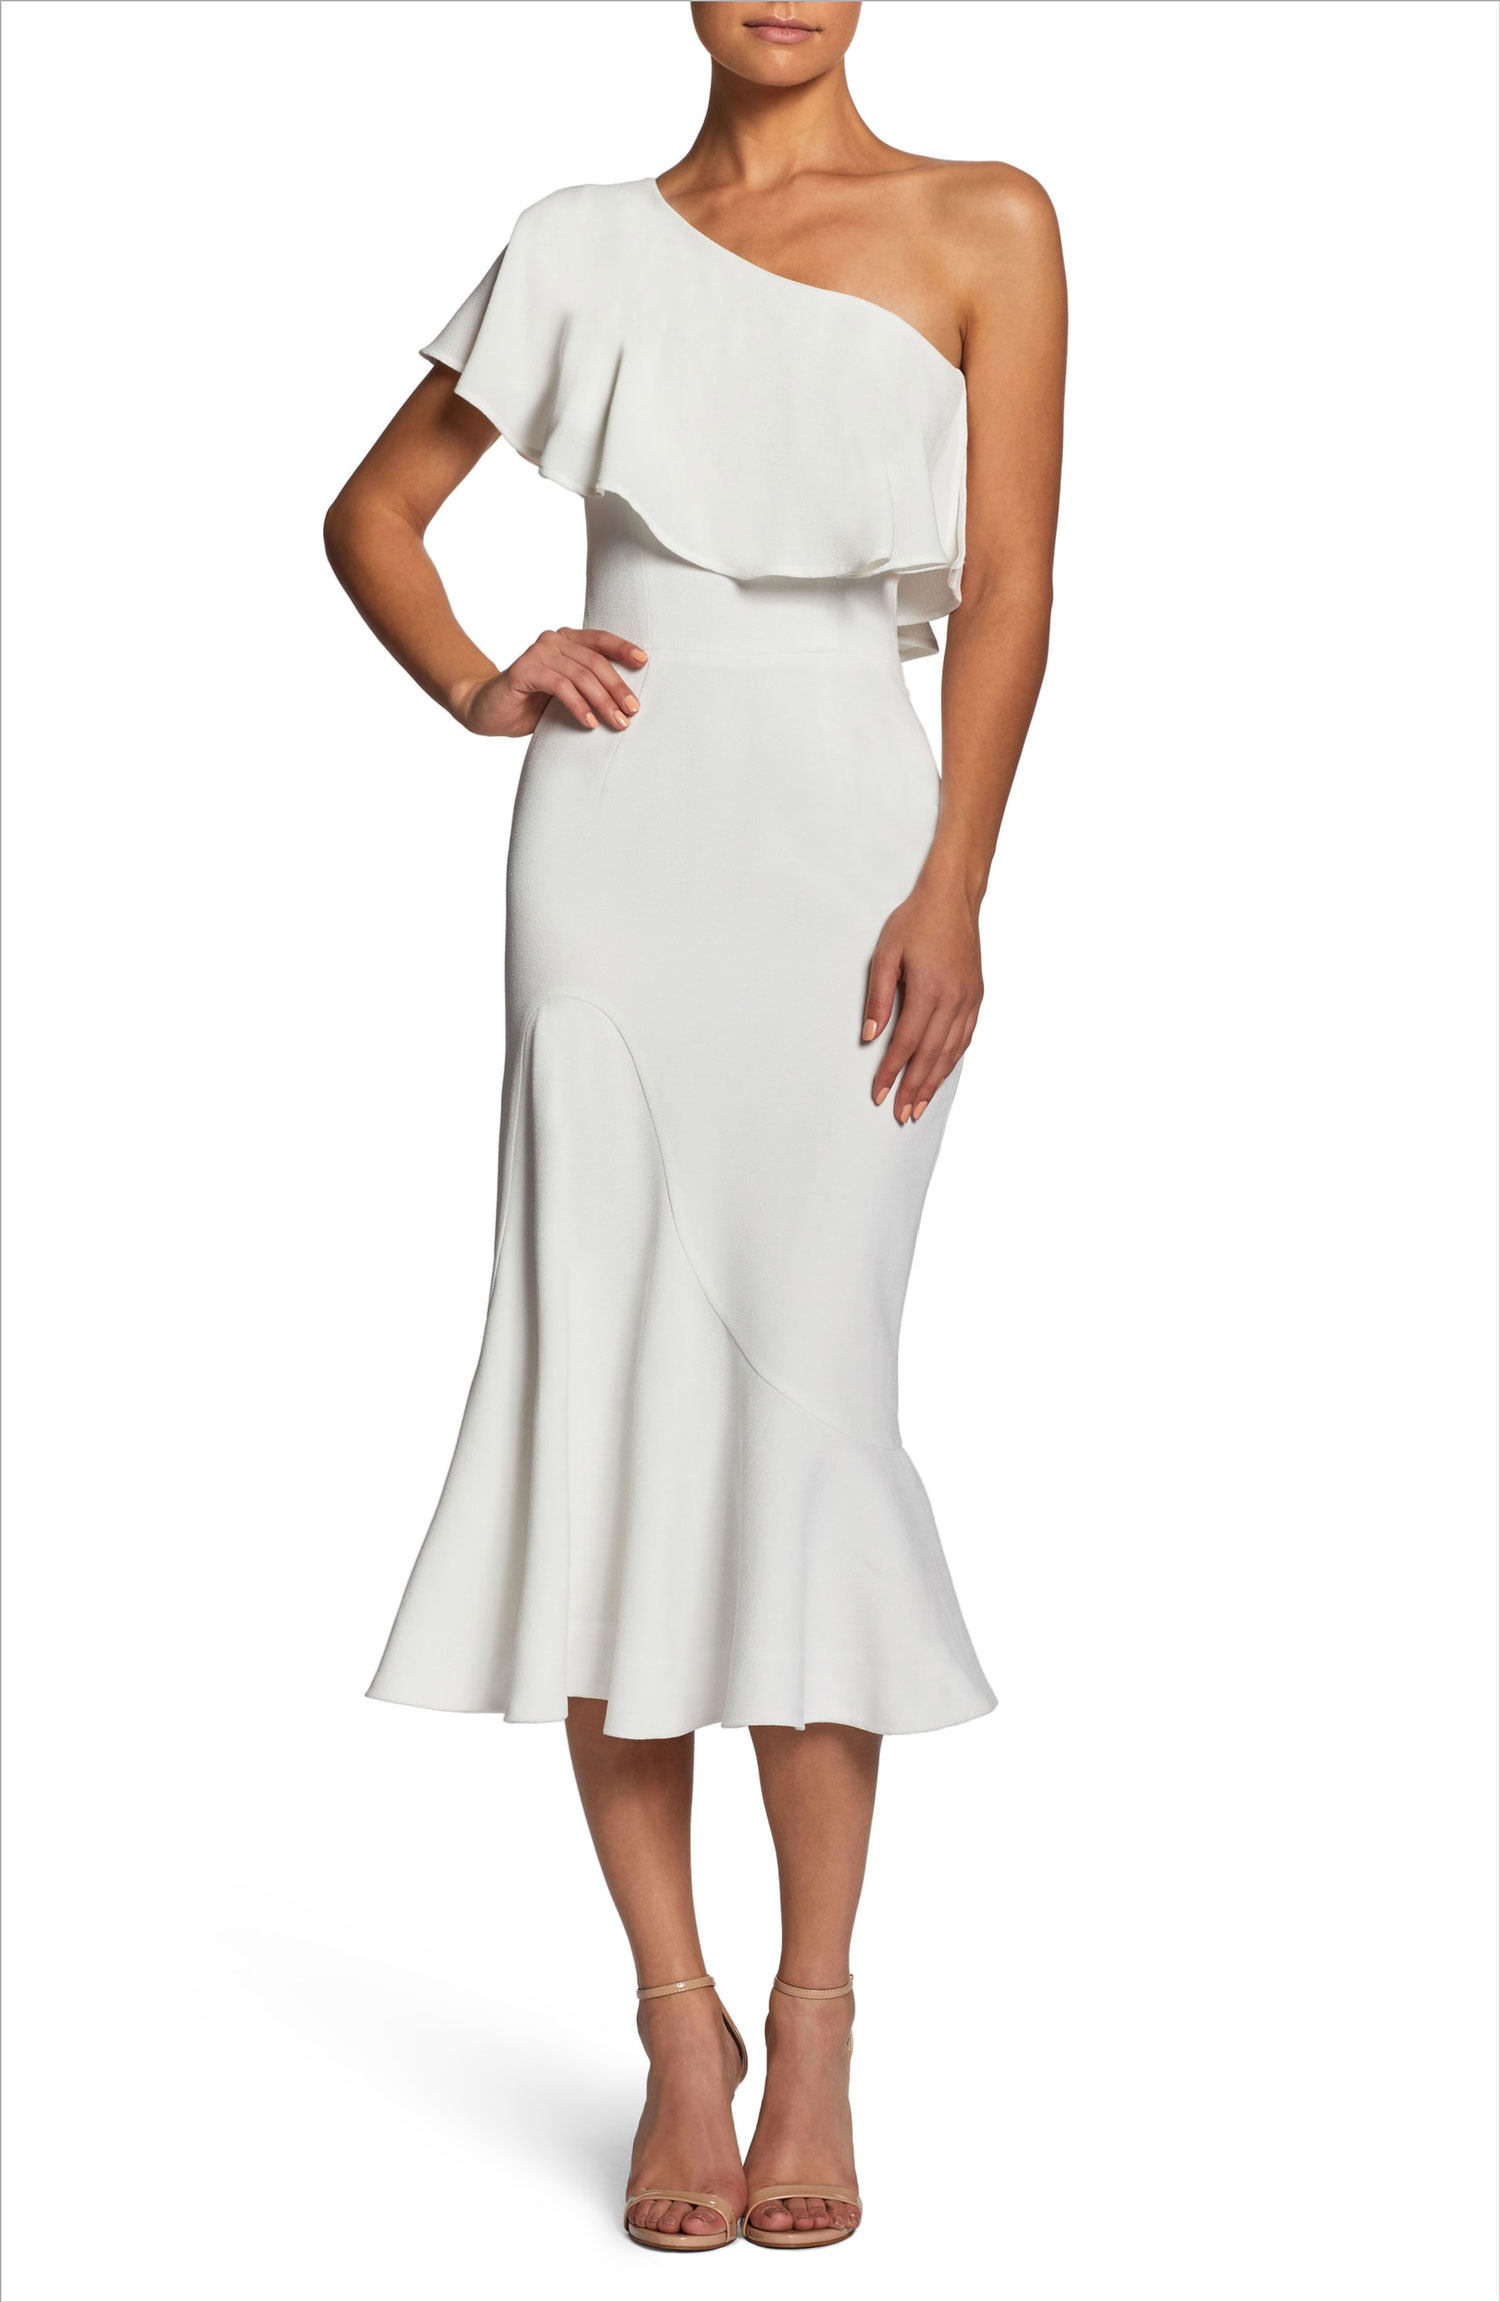 Raquel one shoulder trumpet dress dress the population nordstrom bridal shower dress ideas rehearsal dinner